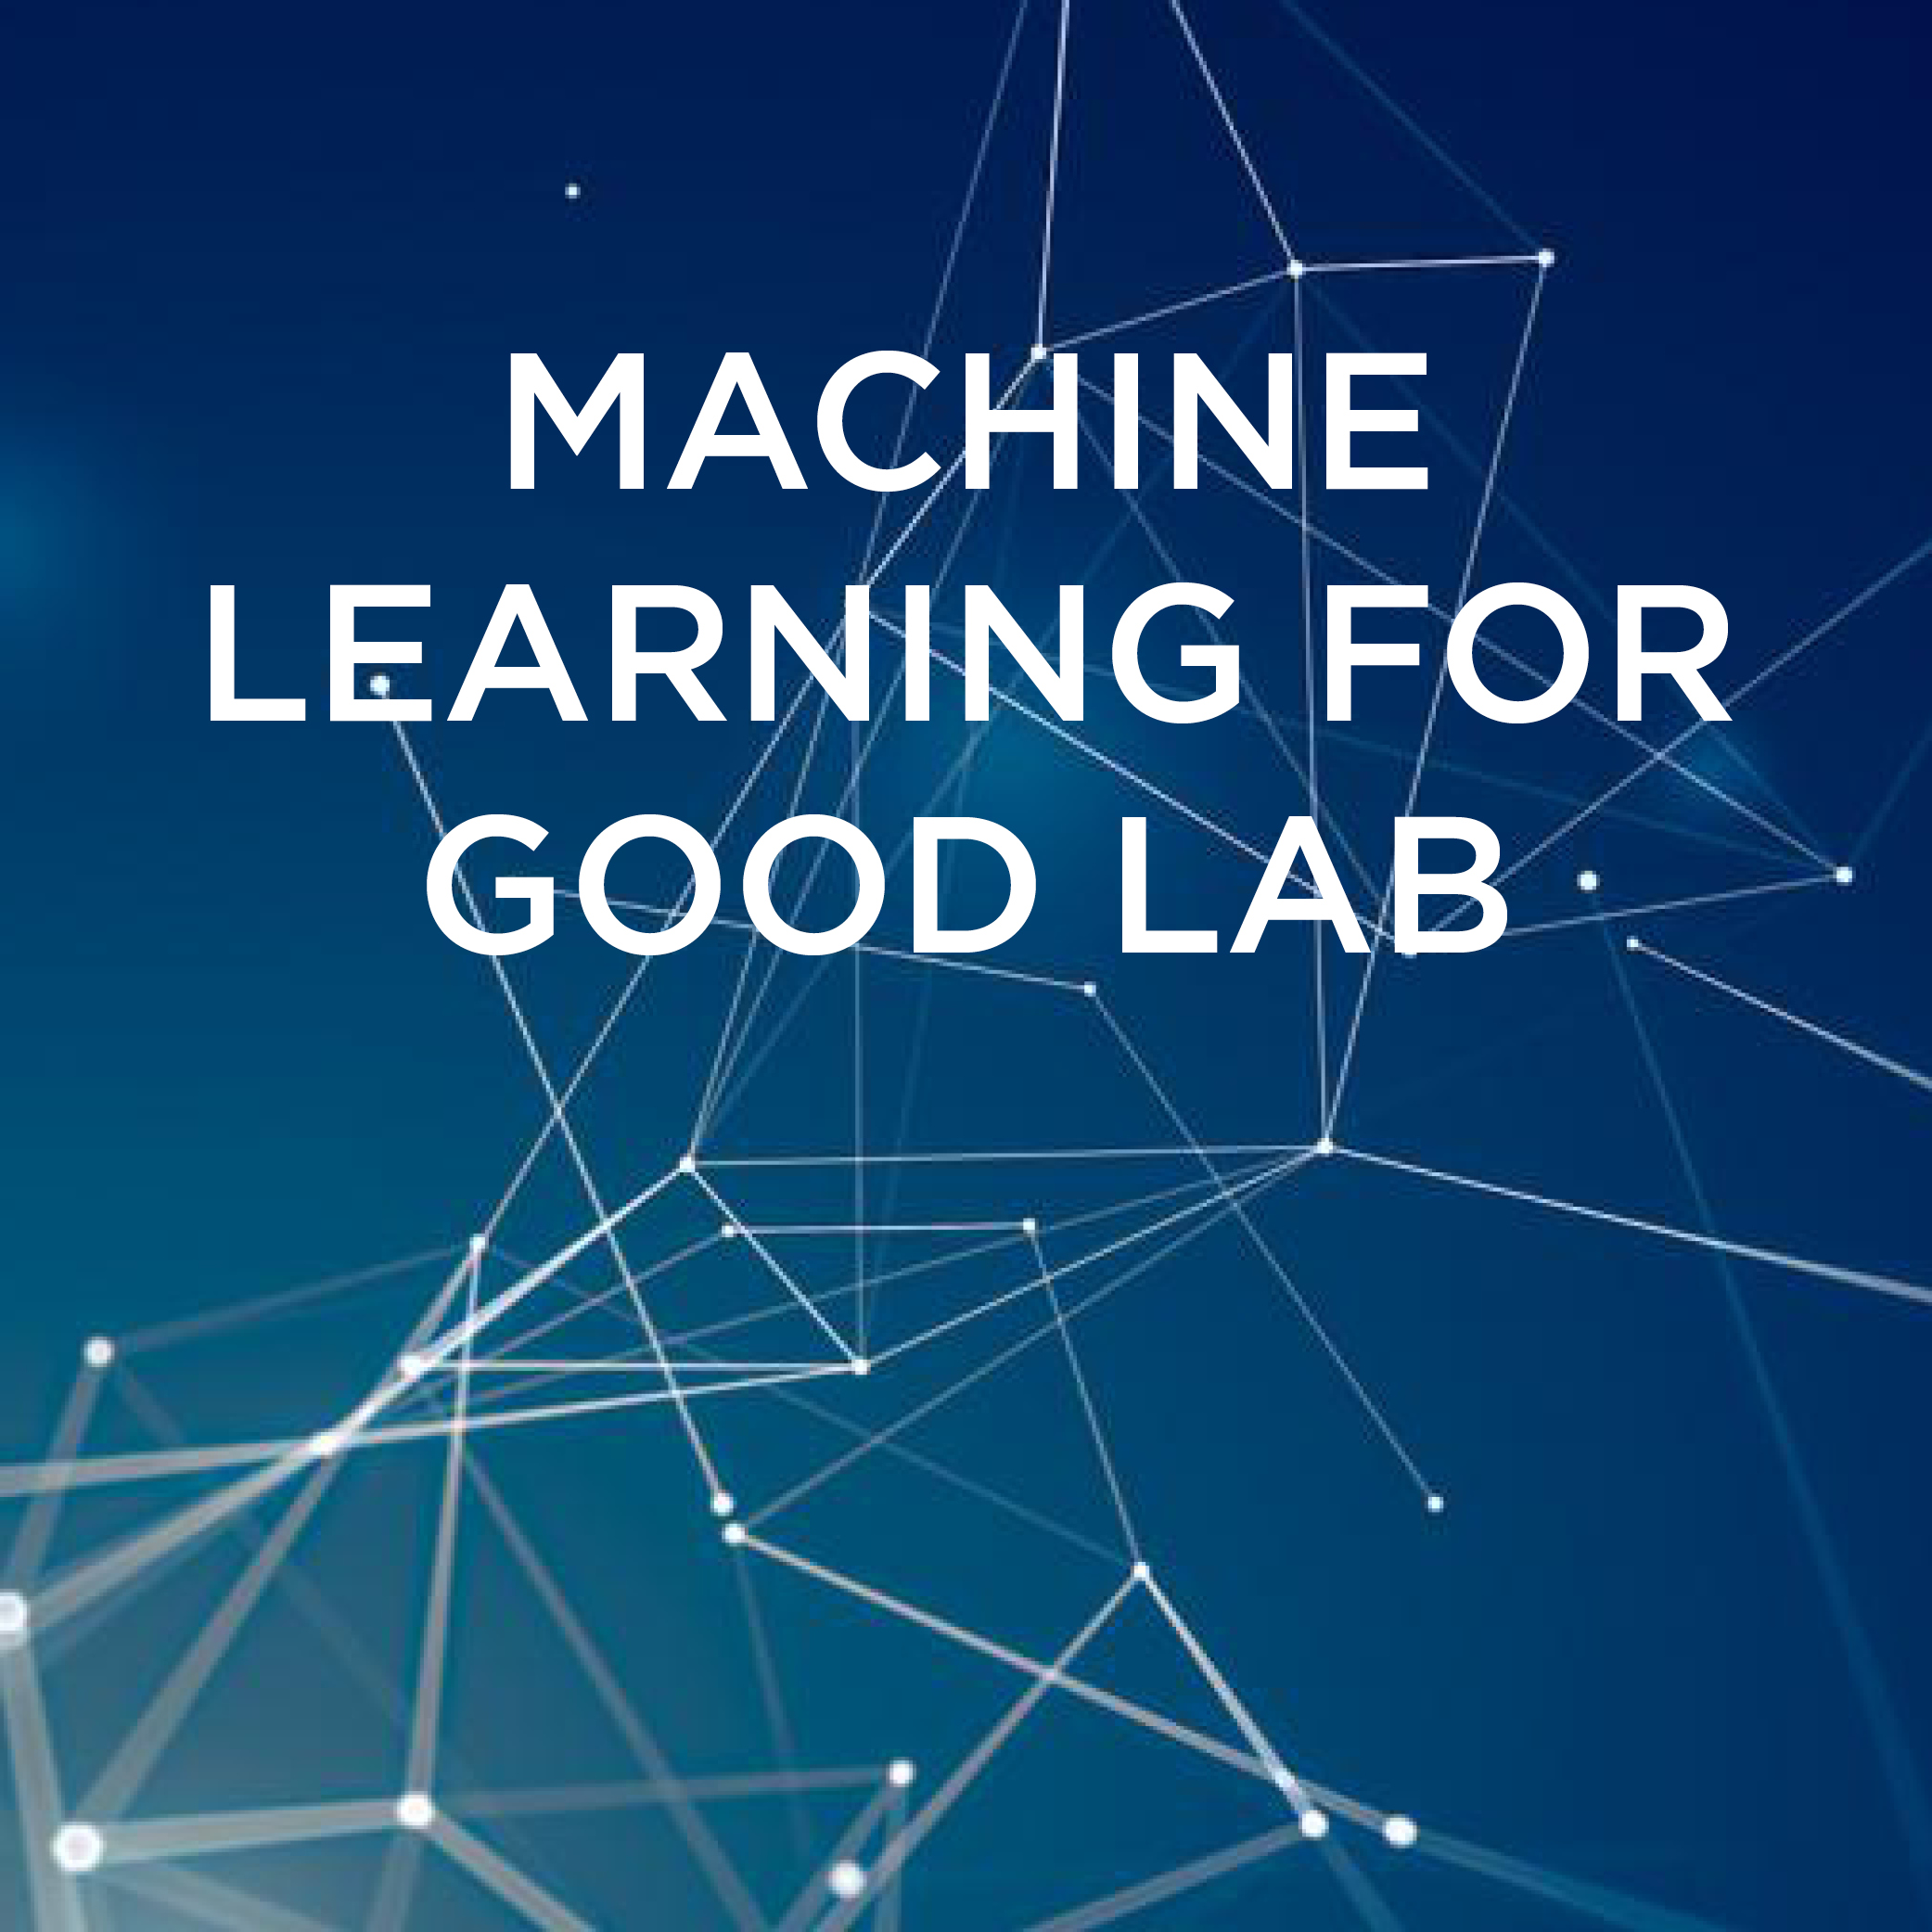 Machine Learning for Good Laboratory (ML4G Lab)